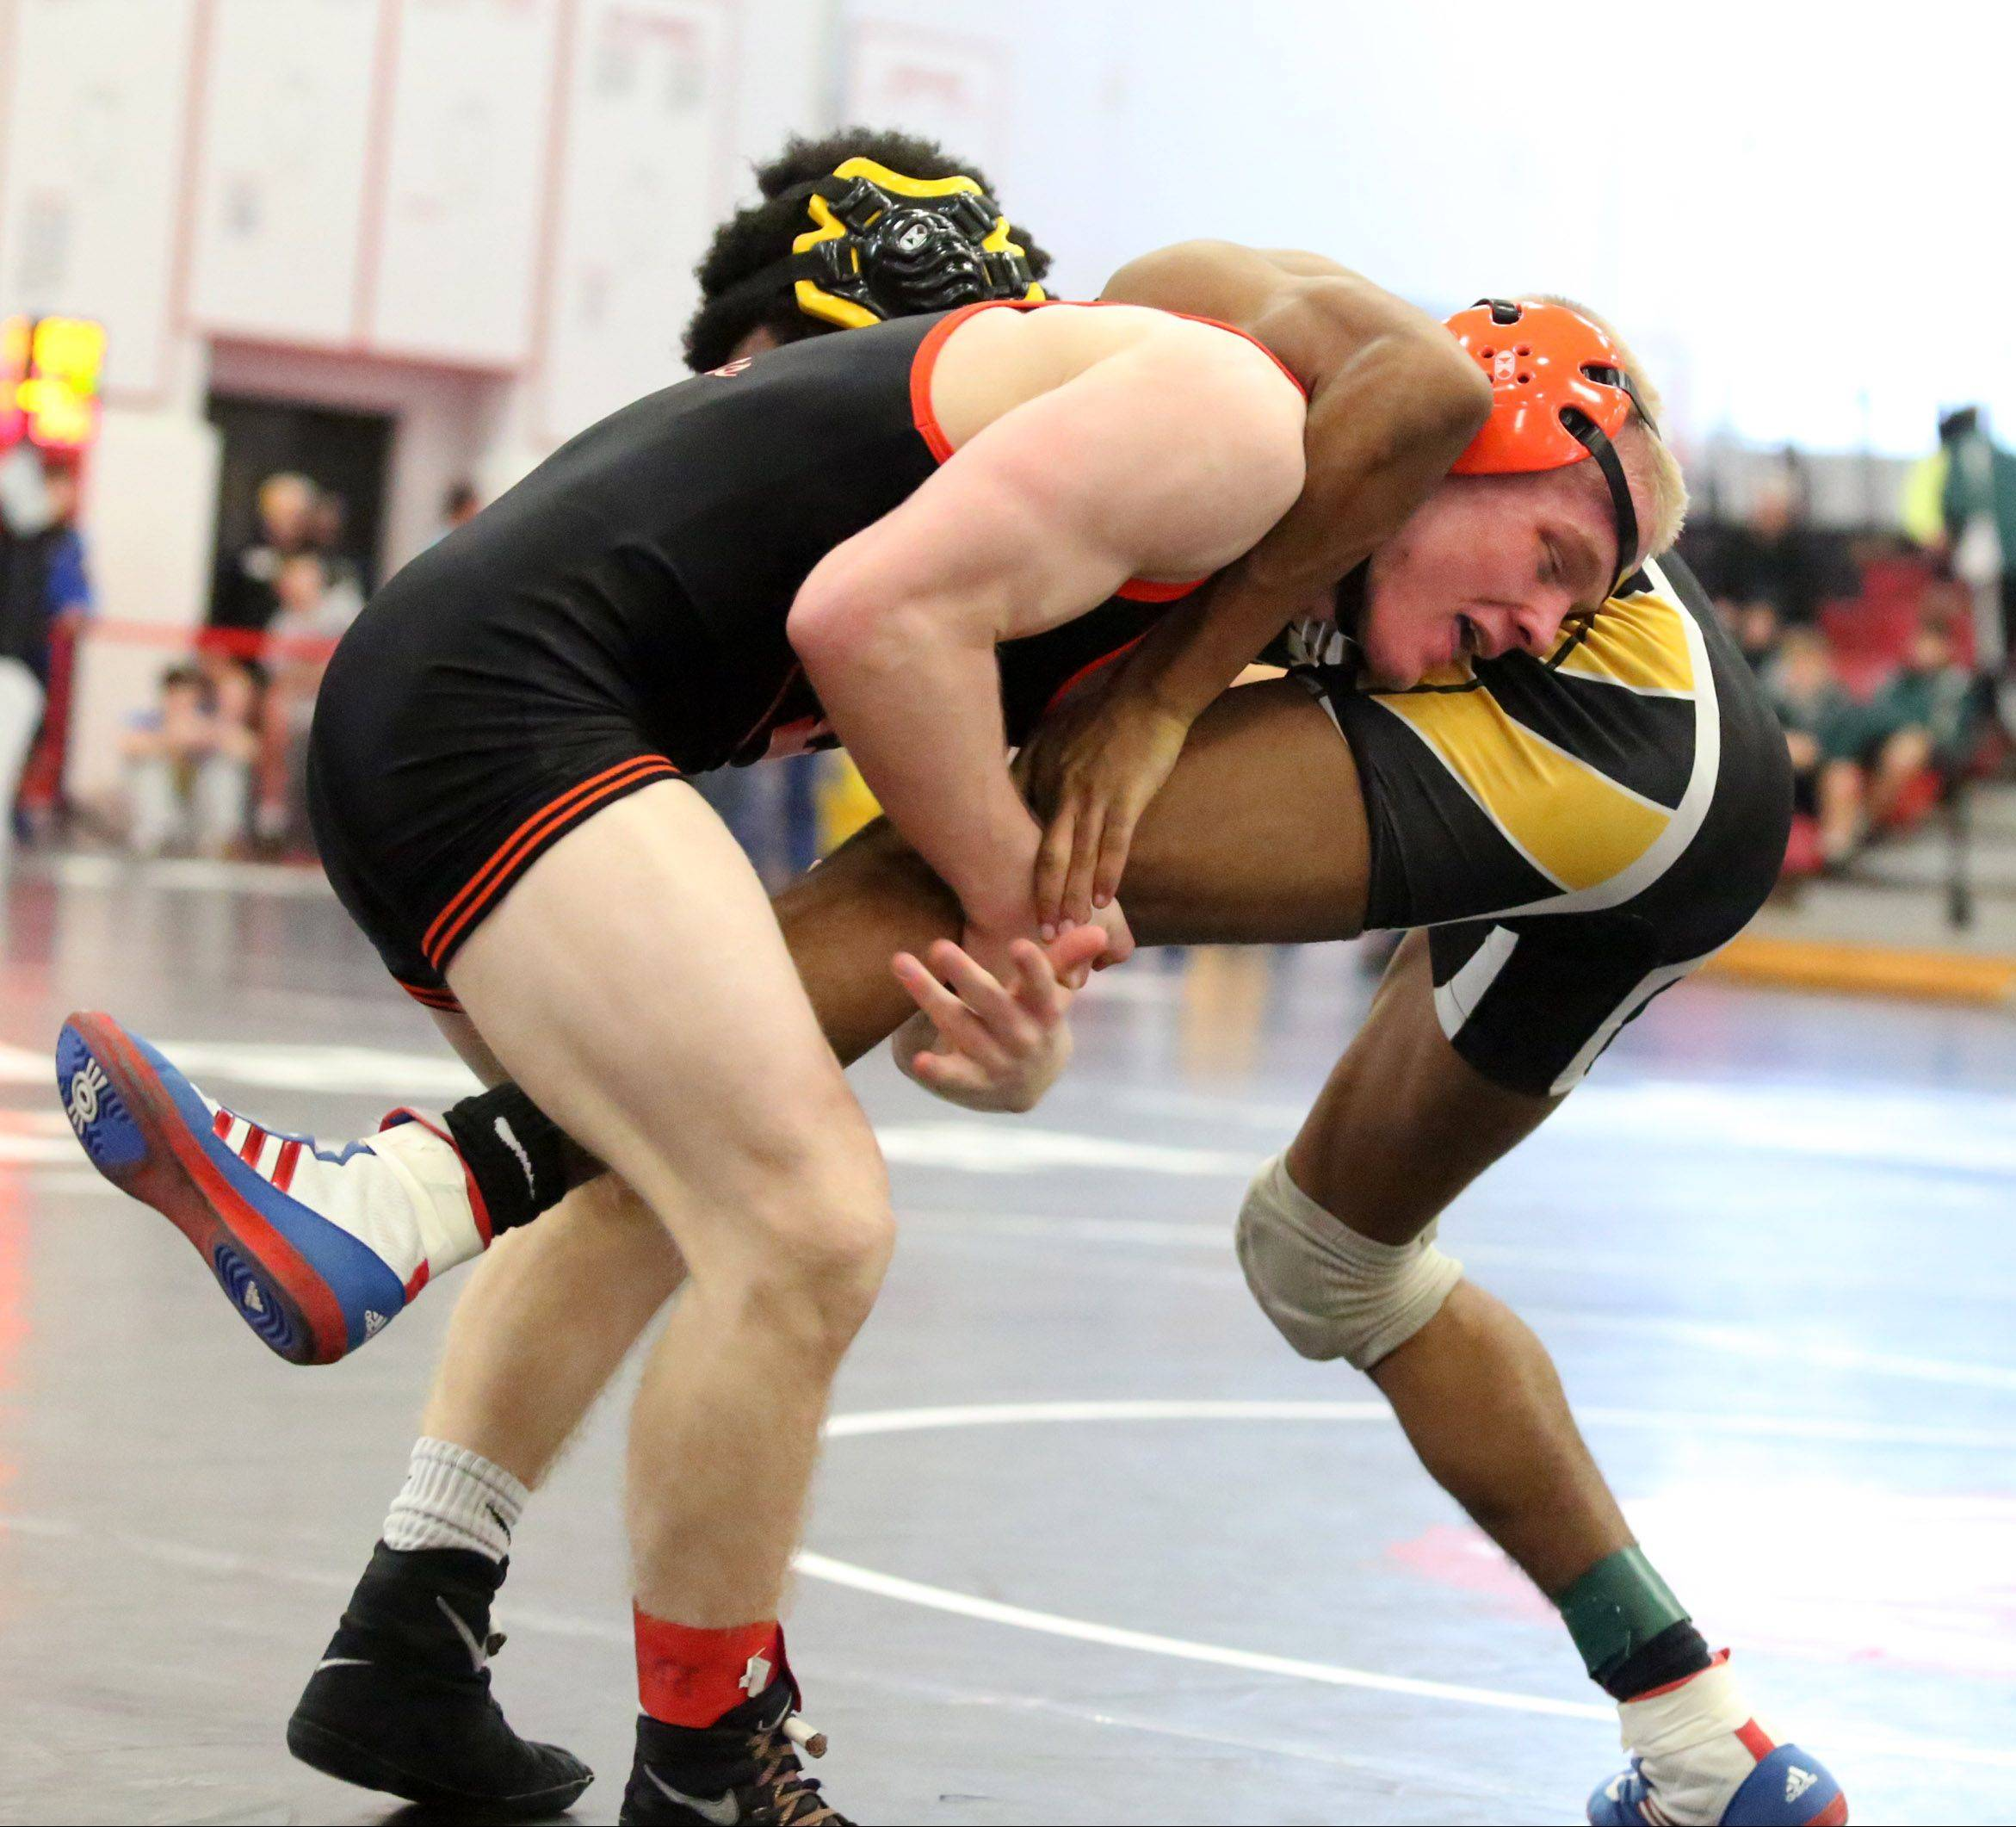 Libertyville's Minnesota-bound Steve Polakowski, left, wrestles Joliet West's Jared Sims in the 120-pound semifinals at the 23rd annual Moore/Prettyman tournament at Barrington last Saturday.